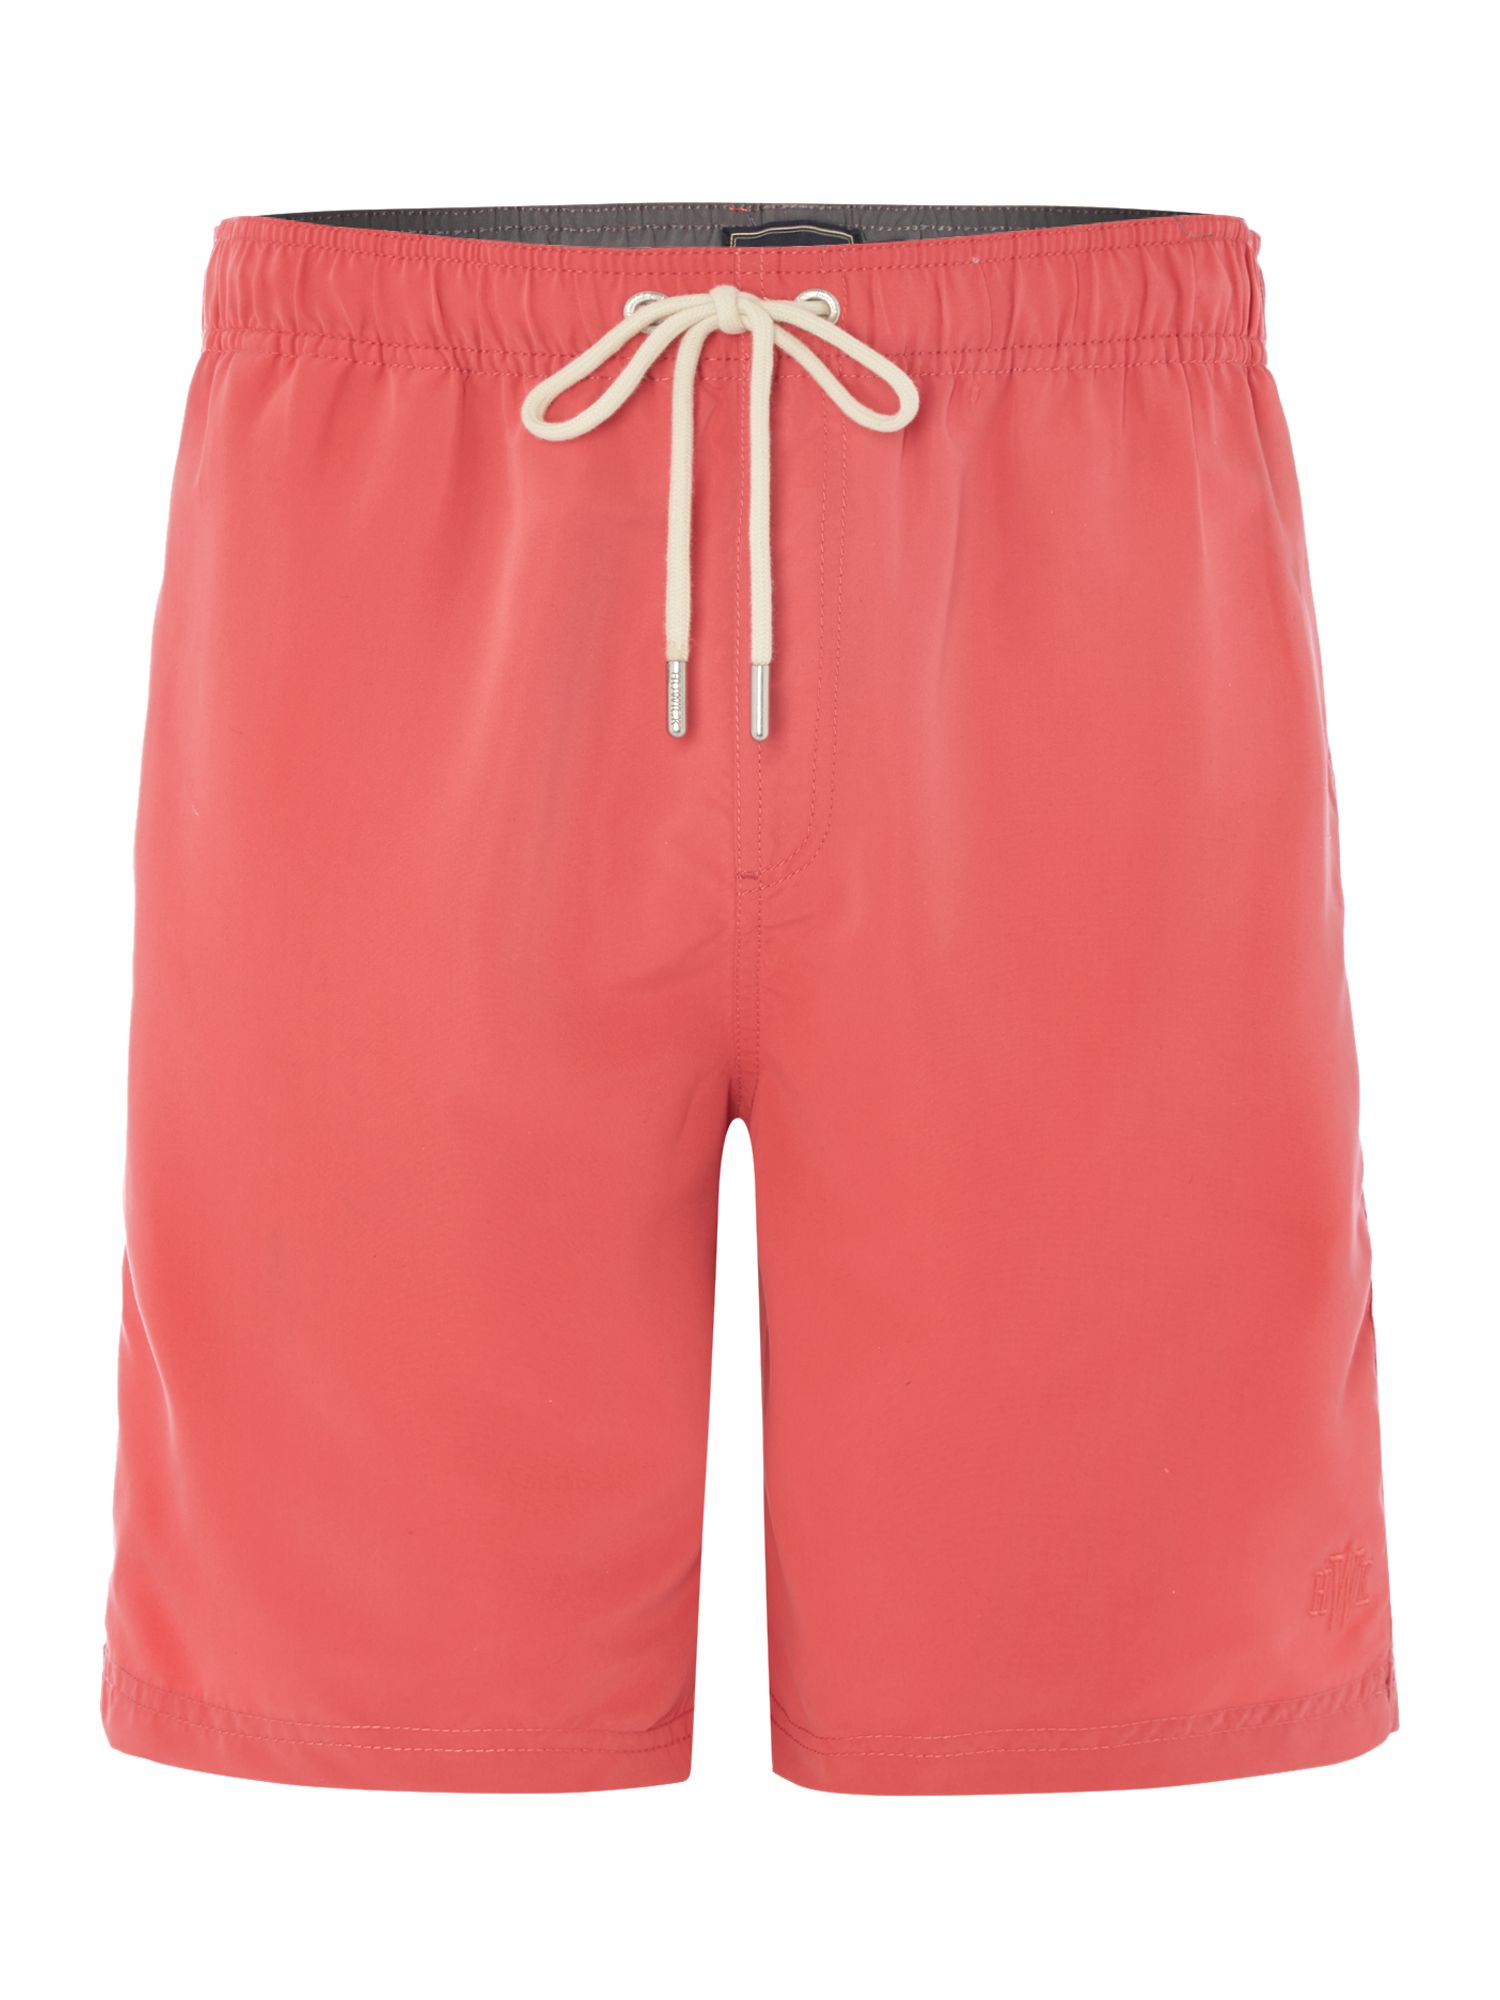 men's swim These shorts fit true to size but are slightly more fitted than TABS Bermuda Shorts. If in doubt go bigger, there is a hidden draw string to adjust the waist.